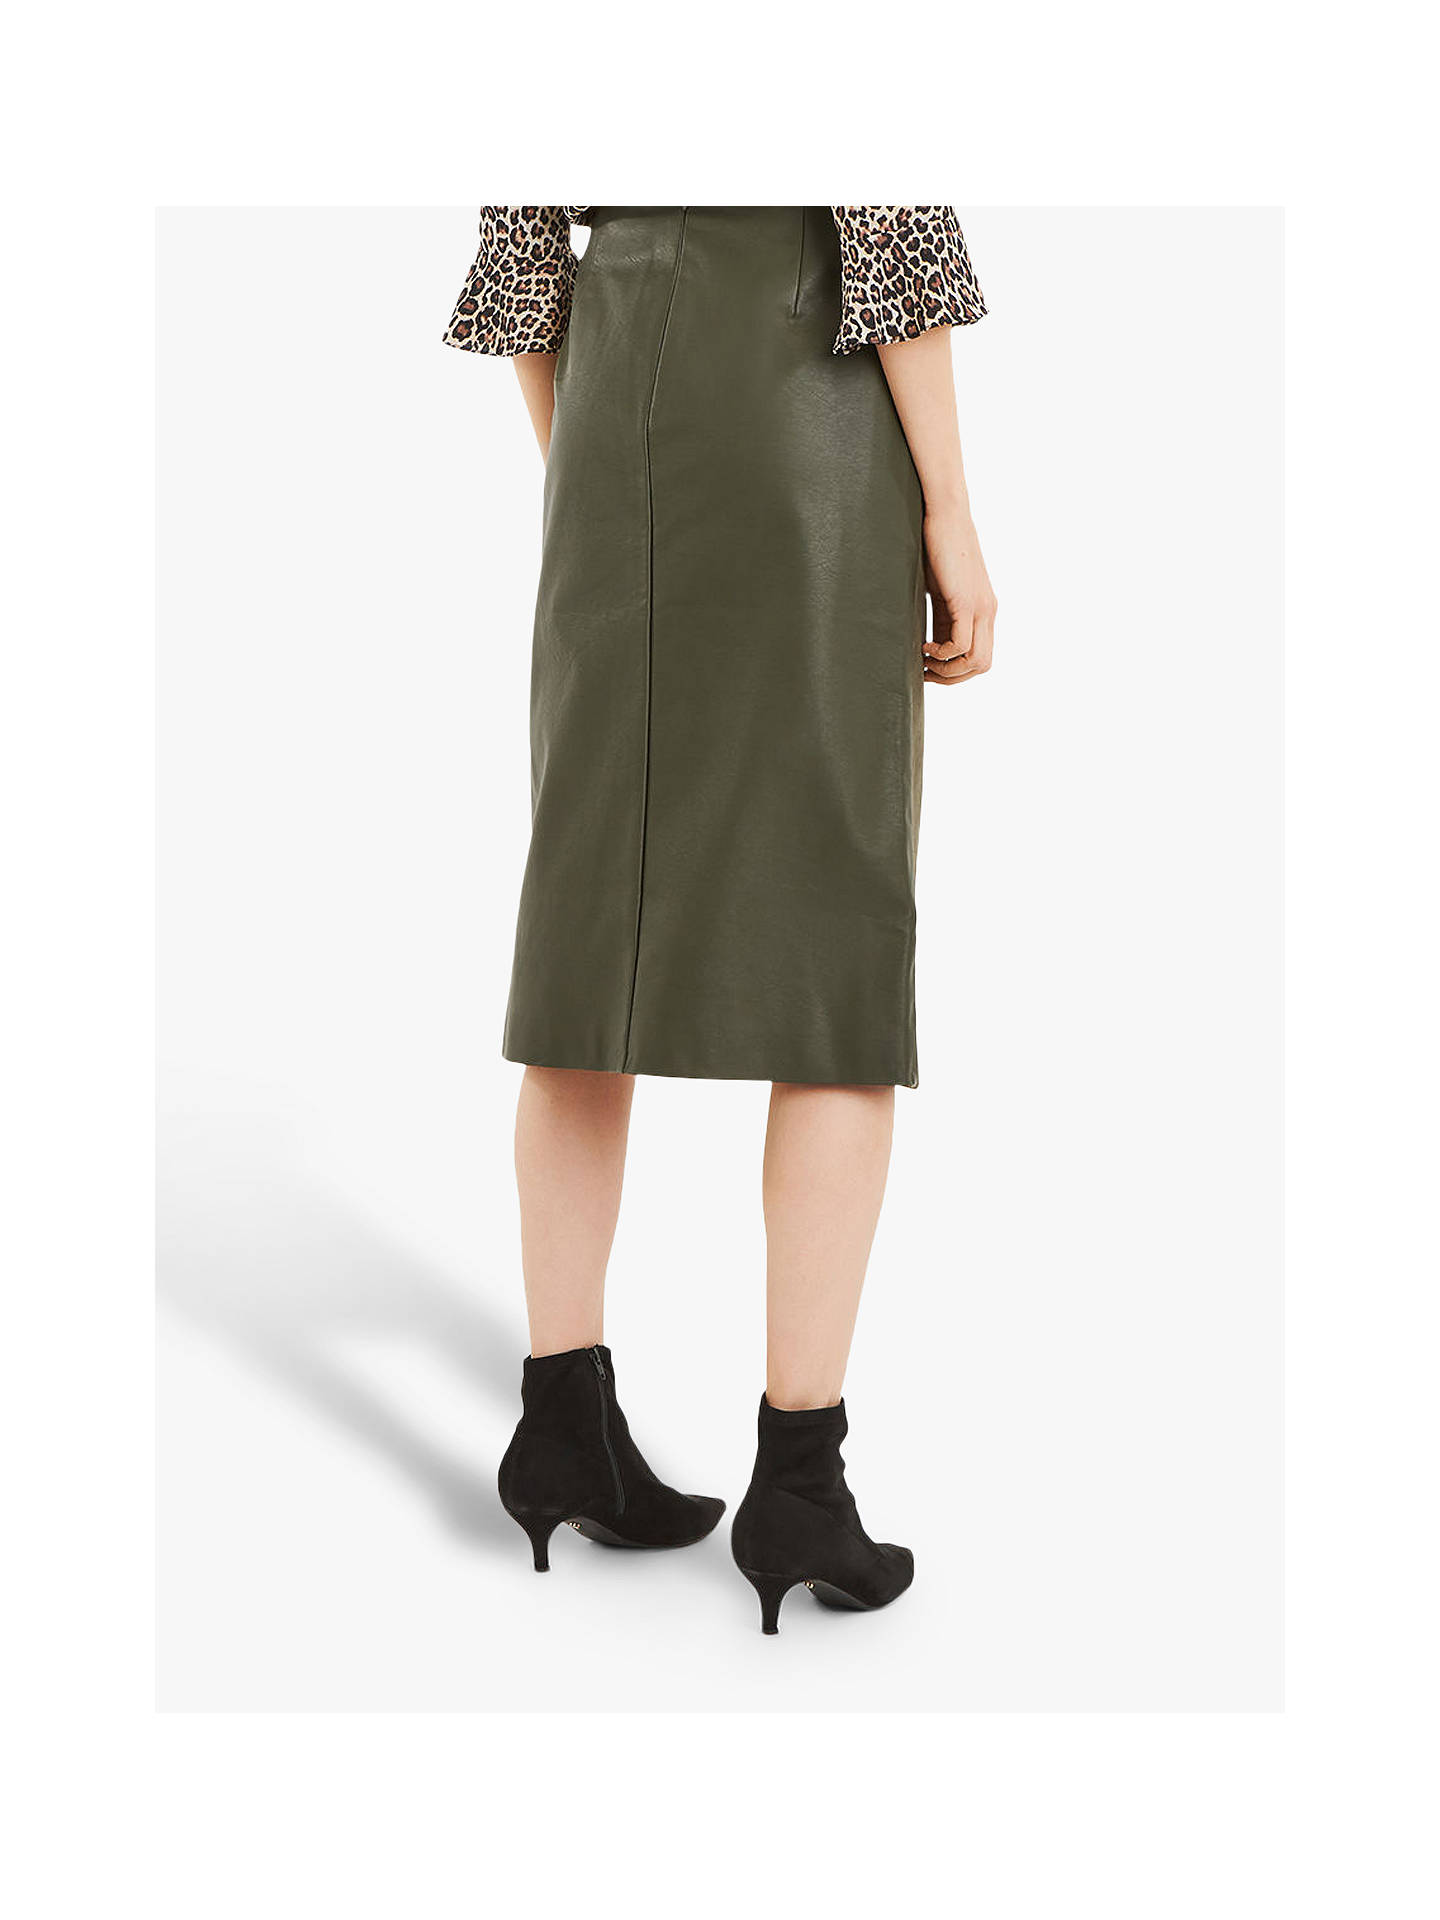 62986731c84d ... Buy Oasis Faux Suede Asymmetric Midi Skirt, Khaki, 10 Online at  johnlewis.com ...